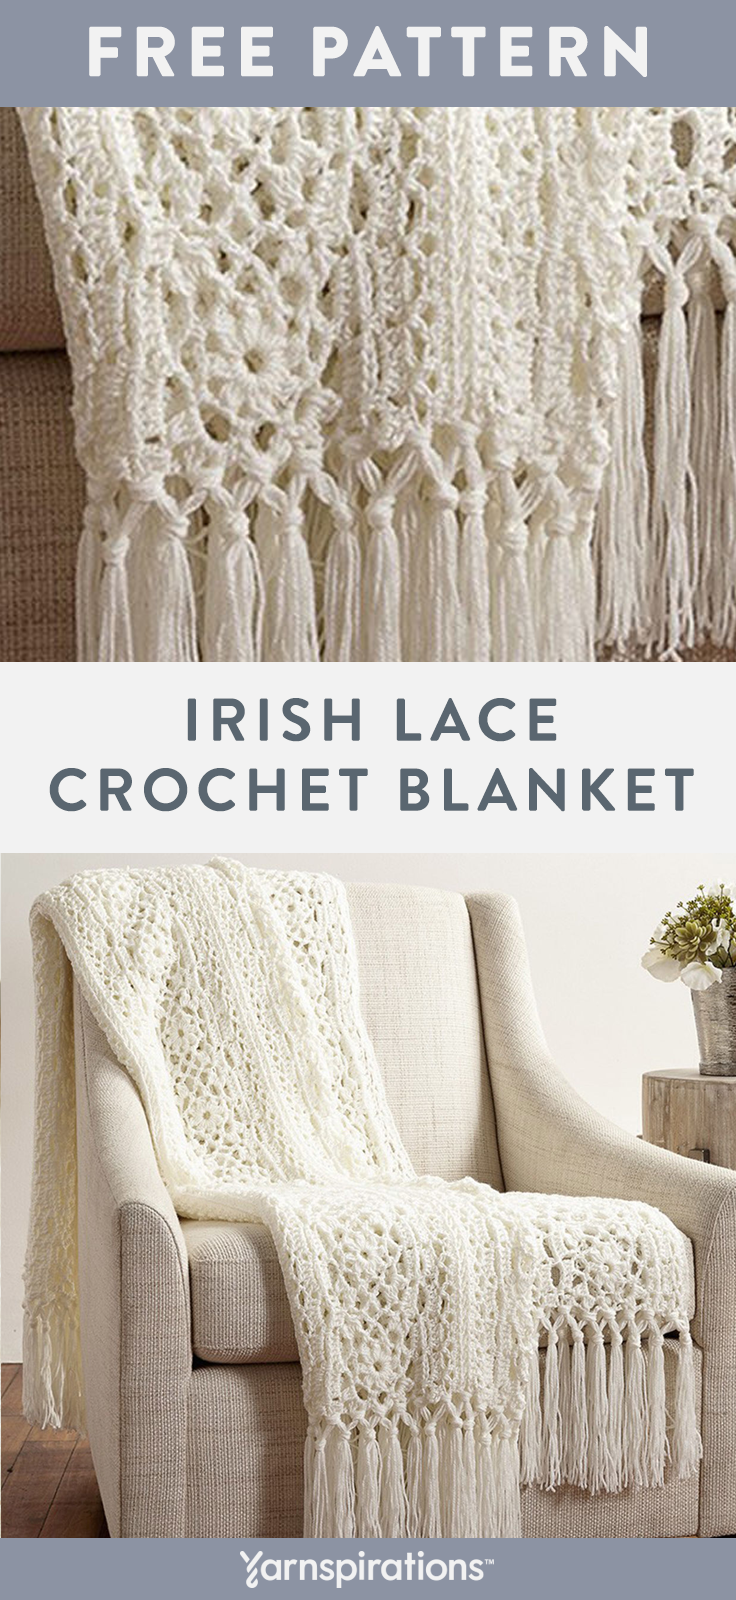 Free Crochet Pattern | Patons Canadiana Irish Lace Crochet Blanket | #Yarnspirations #FreeCrochetPattern #CrochetBlanket #Patons #PatonsCanadiana #Caron #Bernat #LilySugarNCream #irishlacecrochetpattern